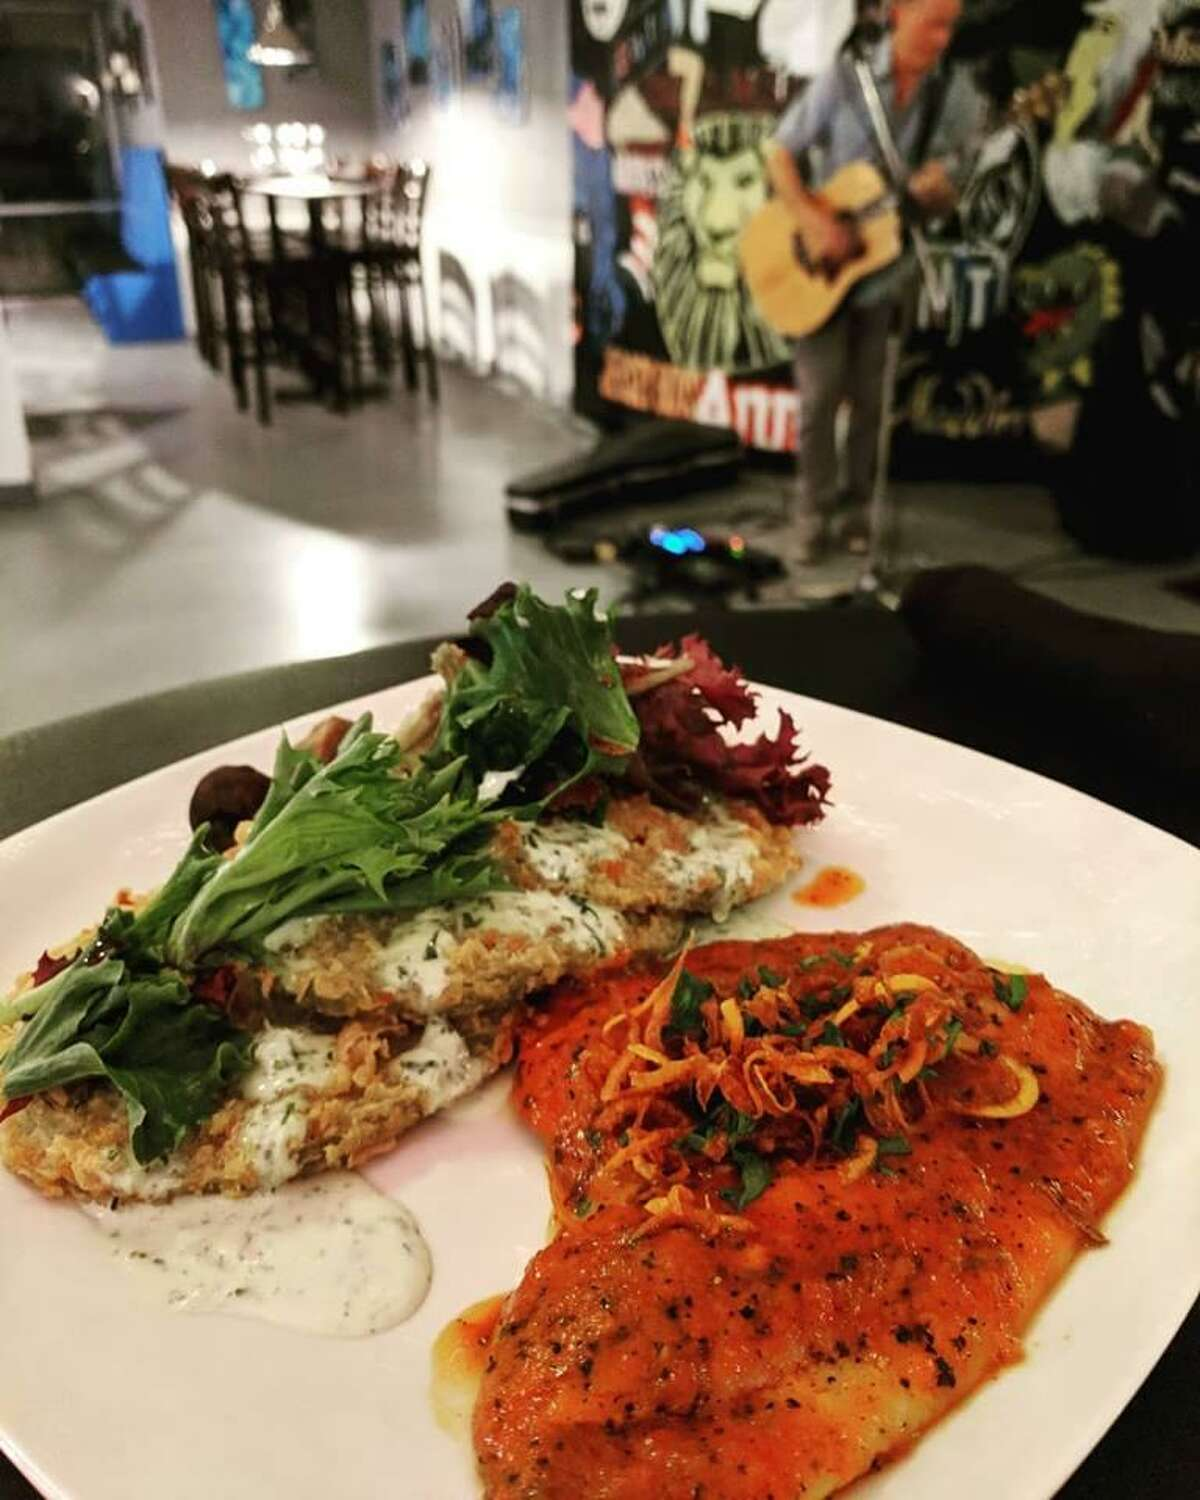 Salt block-seared flounder and fried green tomatoes at Sylver Spoon, a new restaurant and theater at 6700 N. Interstate 35 in New Braunfels.